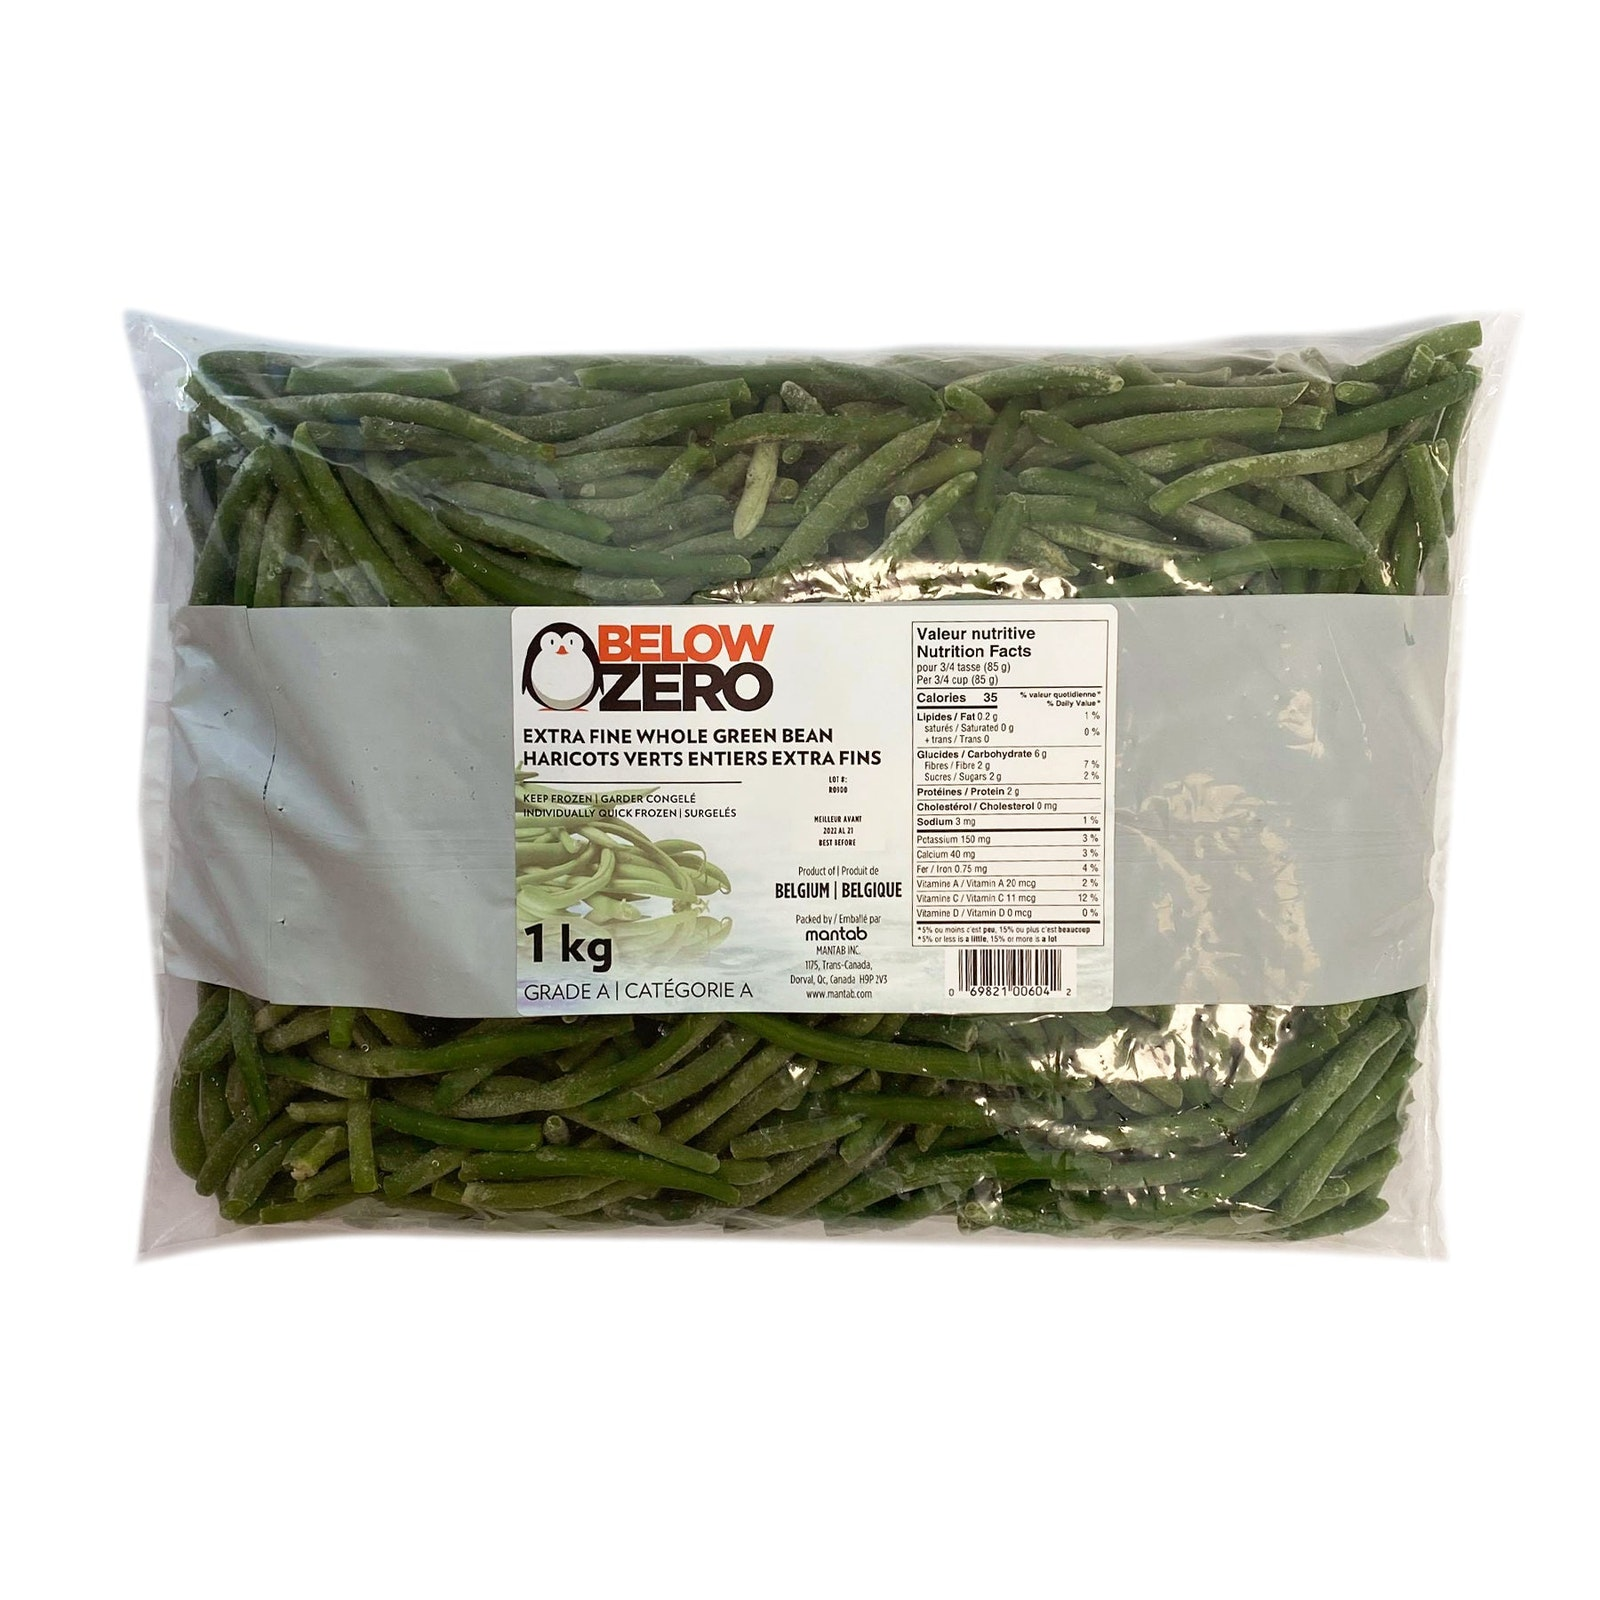 BELOW ZERO Extra fine whole green bean